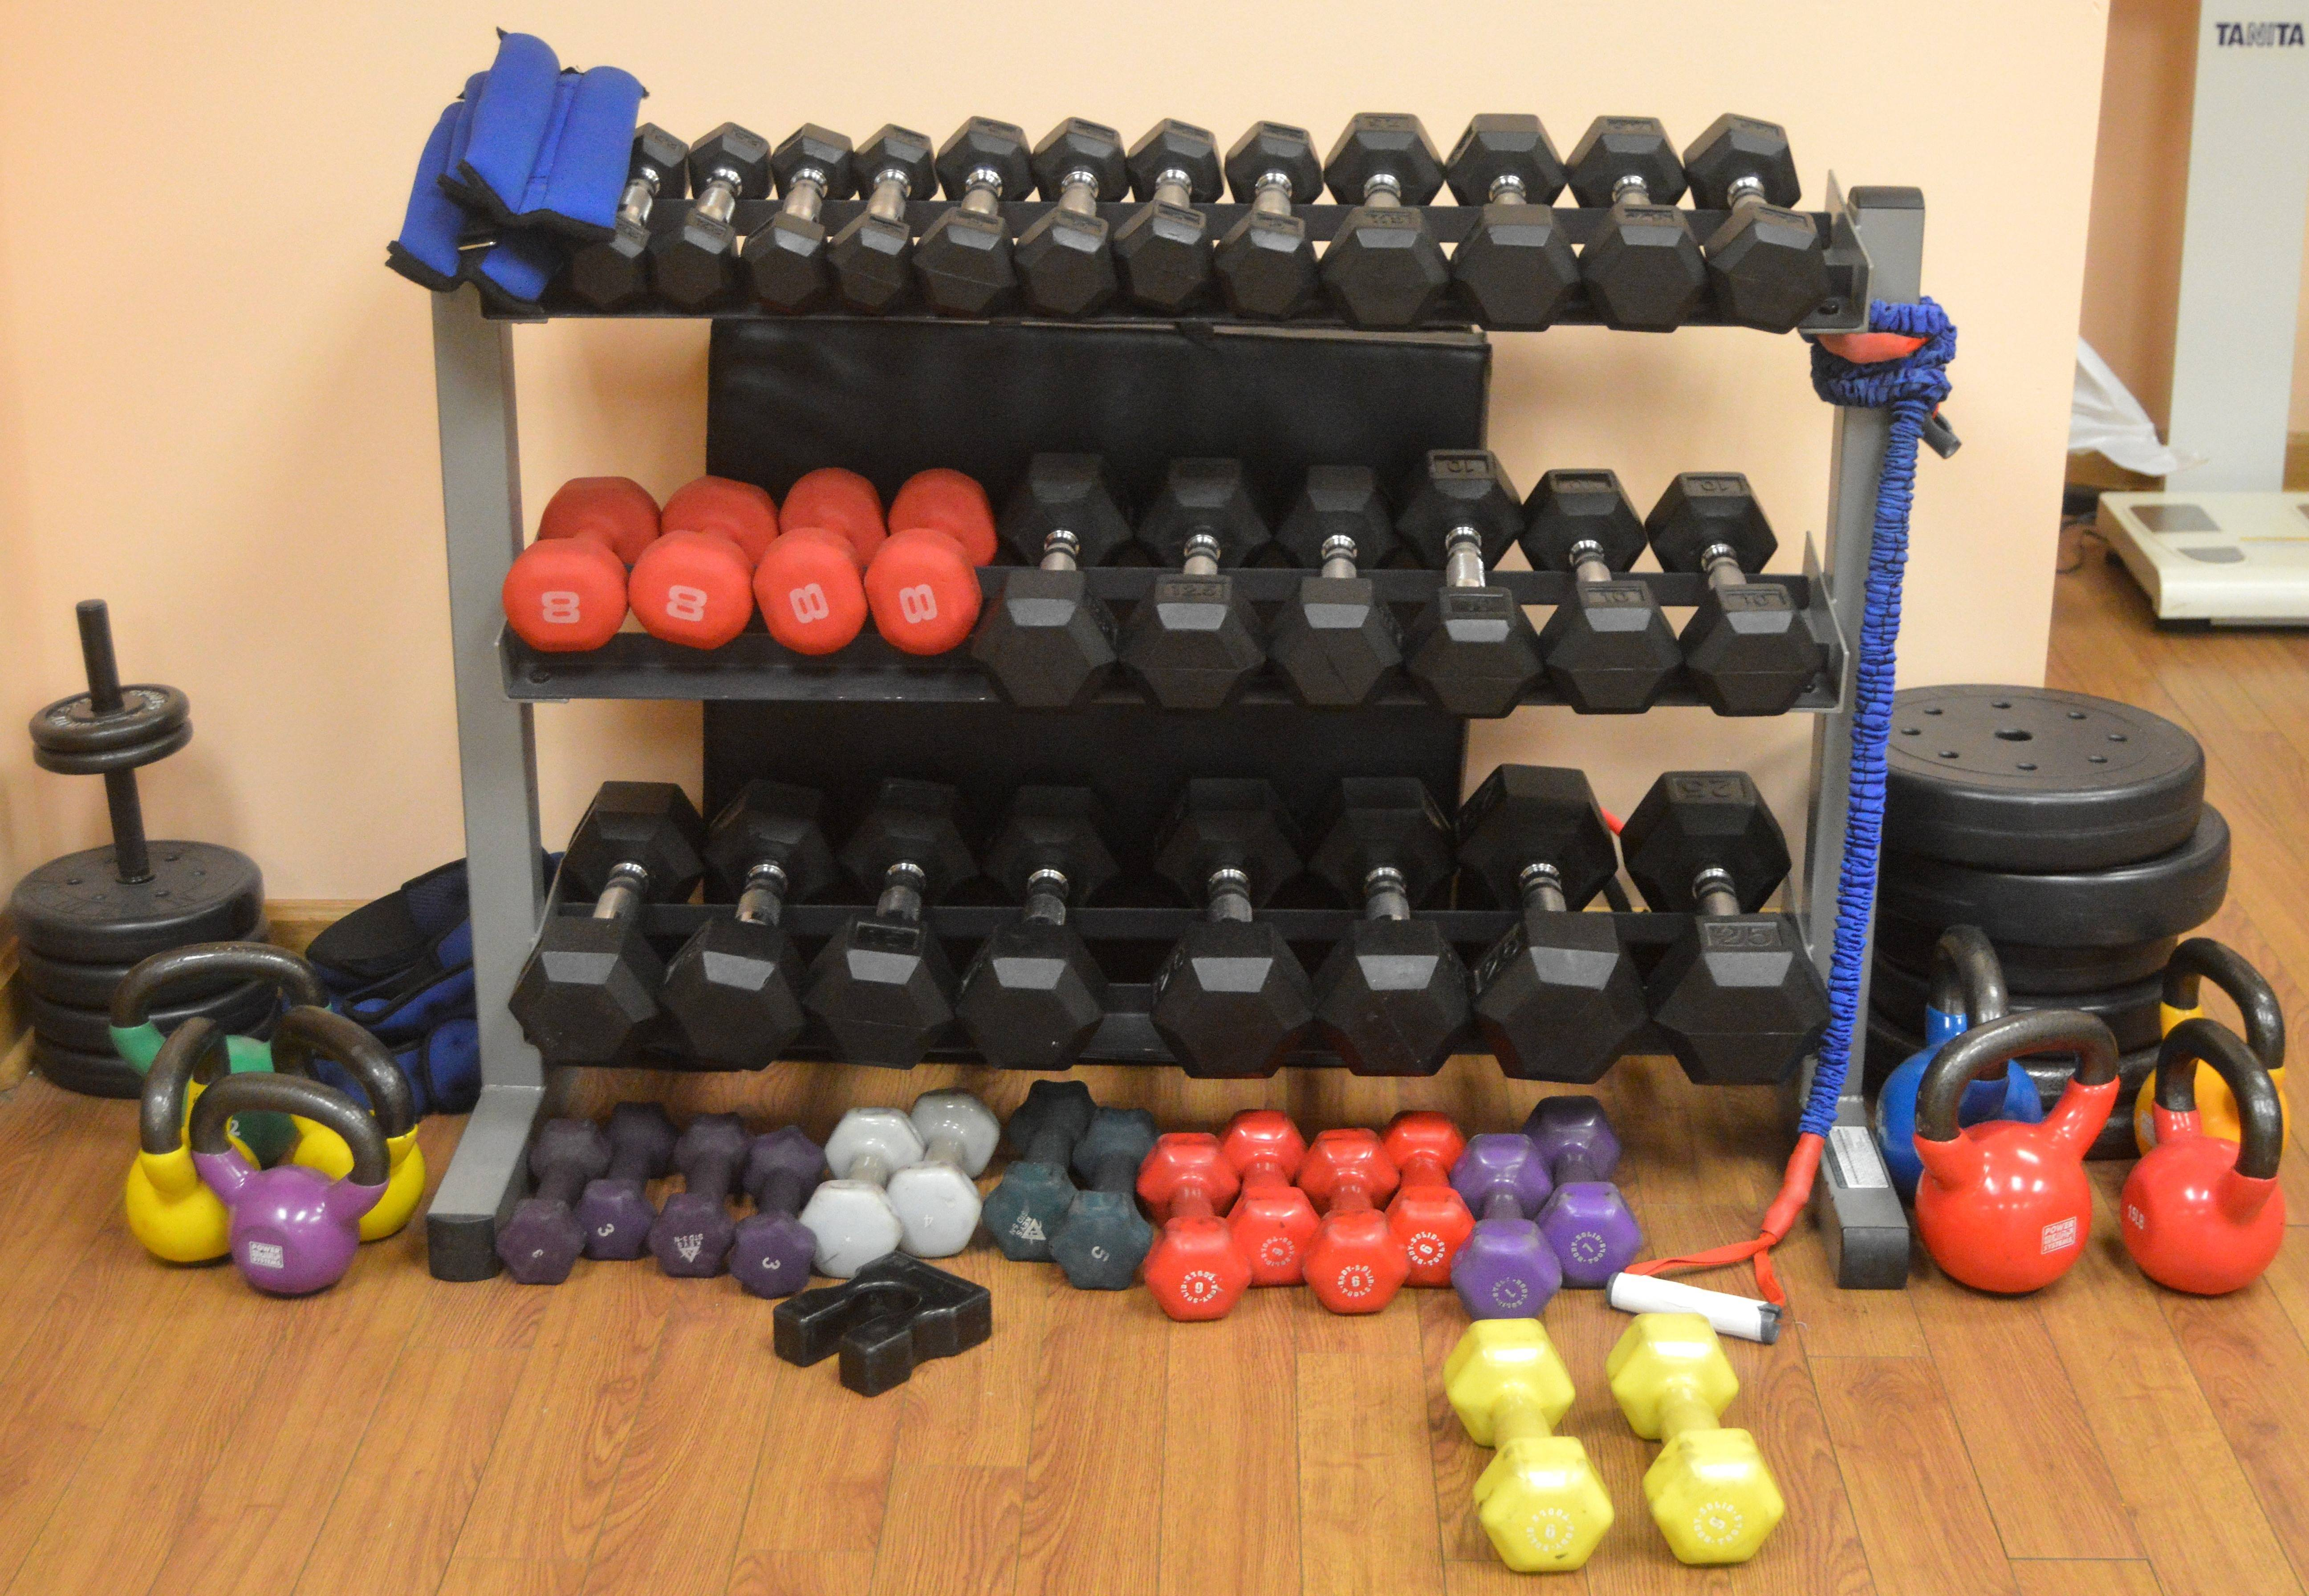 29b430a9d89e858d9c78_Fit_to_Be_Fab_-_weights.JPG